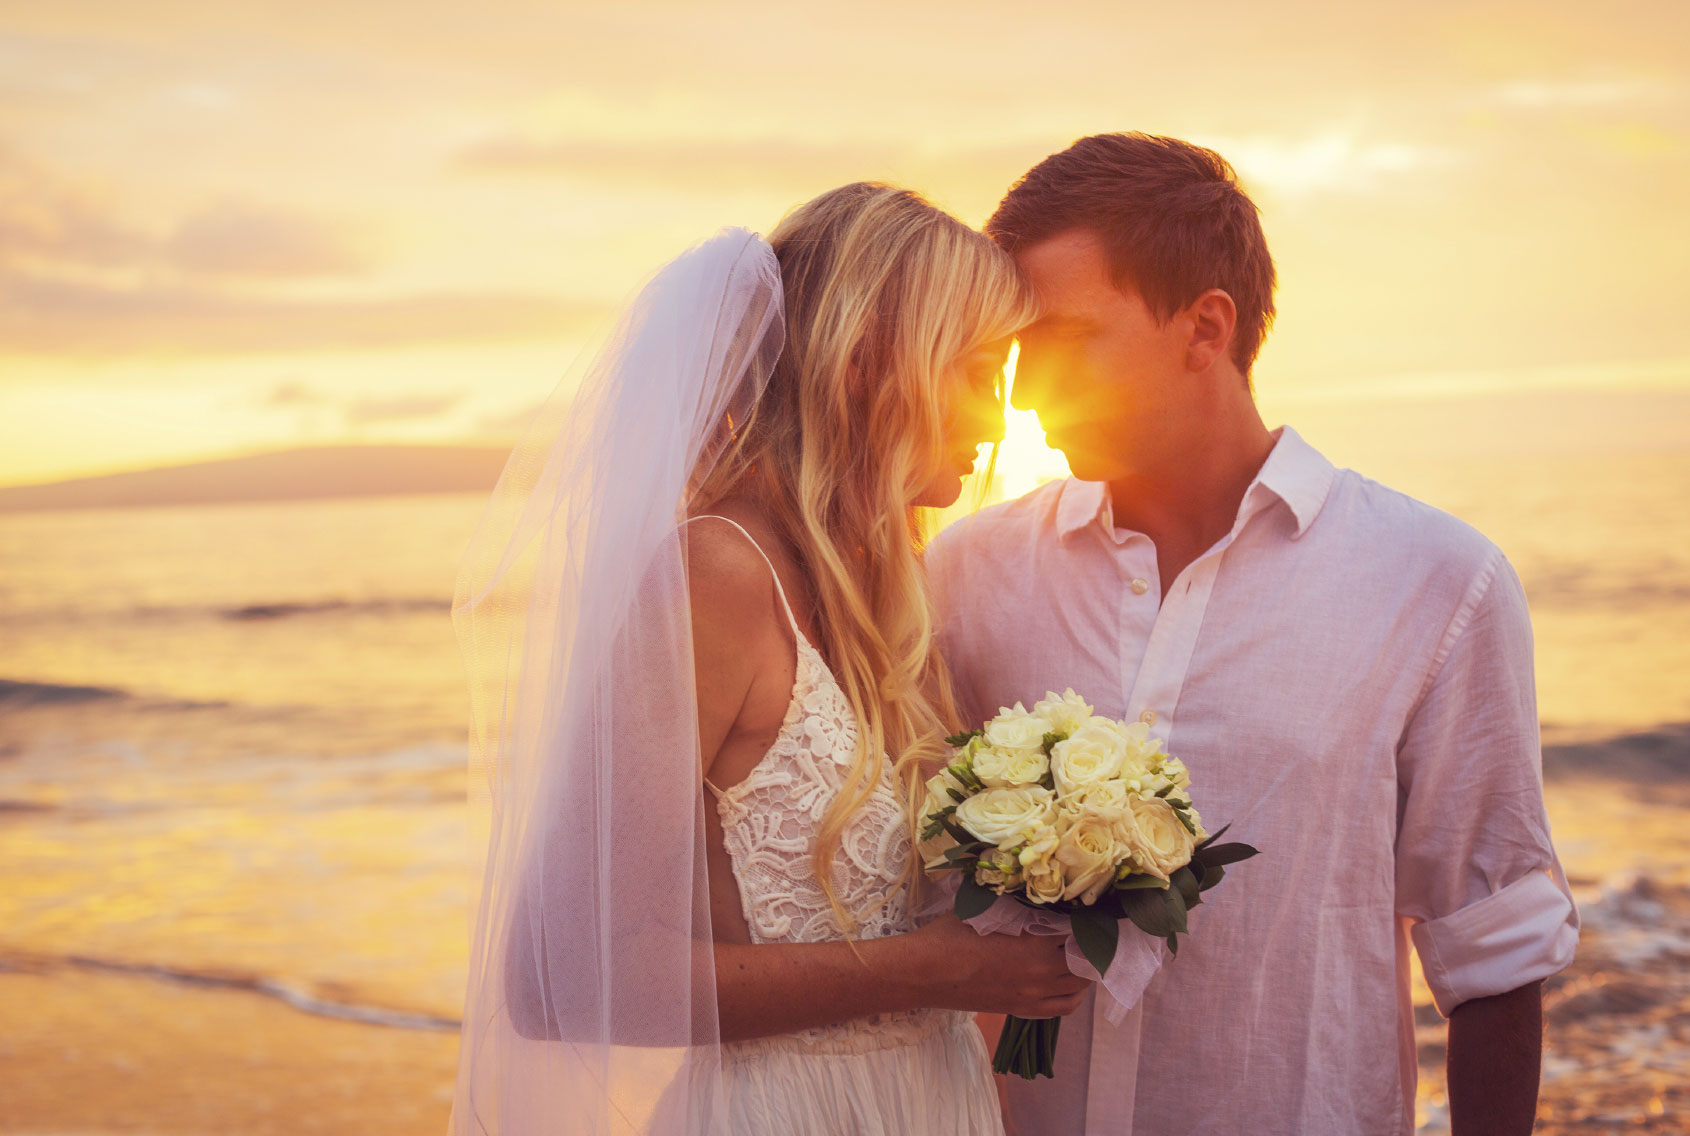 A-bride-and-groom-enjoying-the-view-and-the-amazing-sunset-000031865728_Medium.jpg